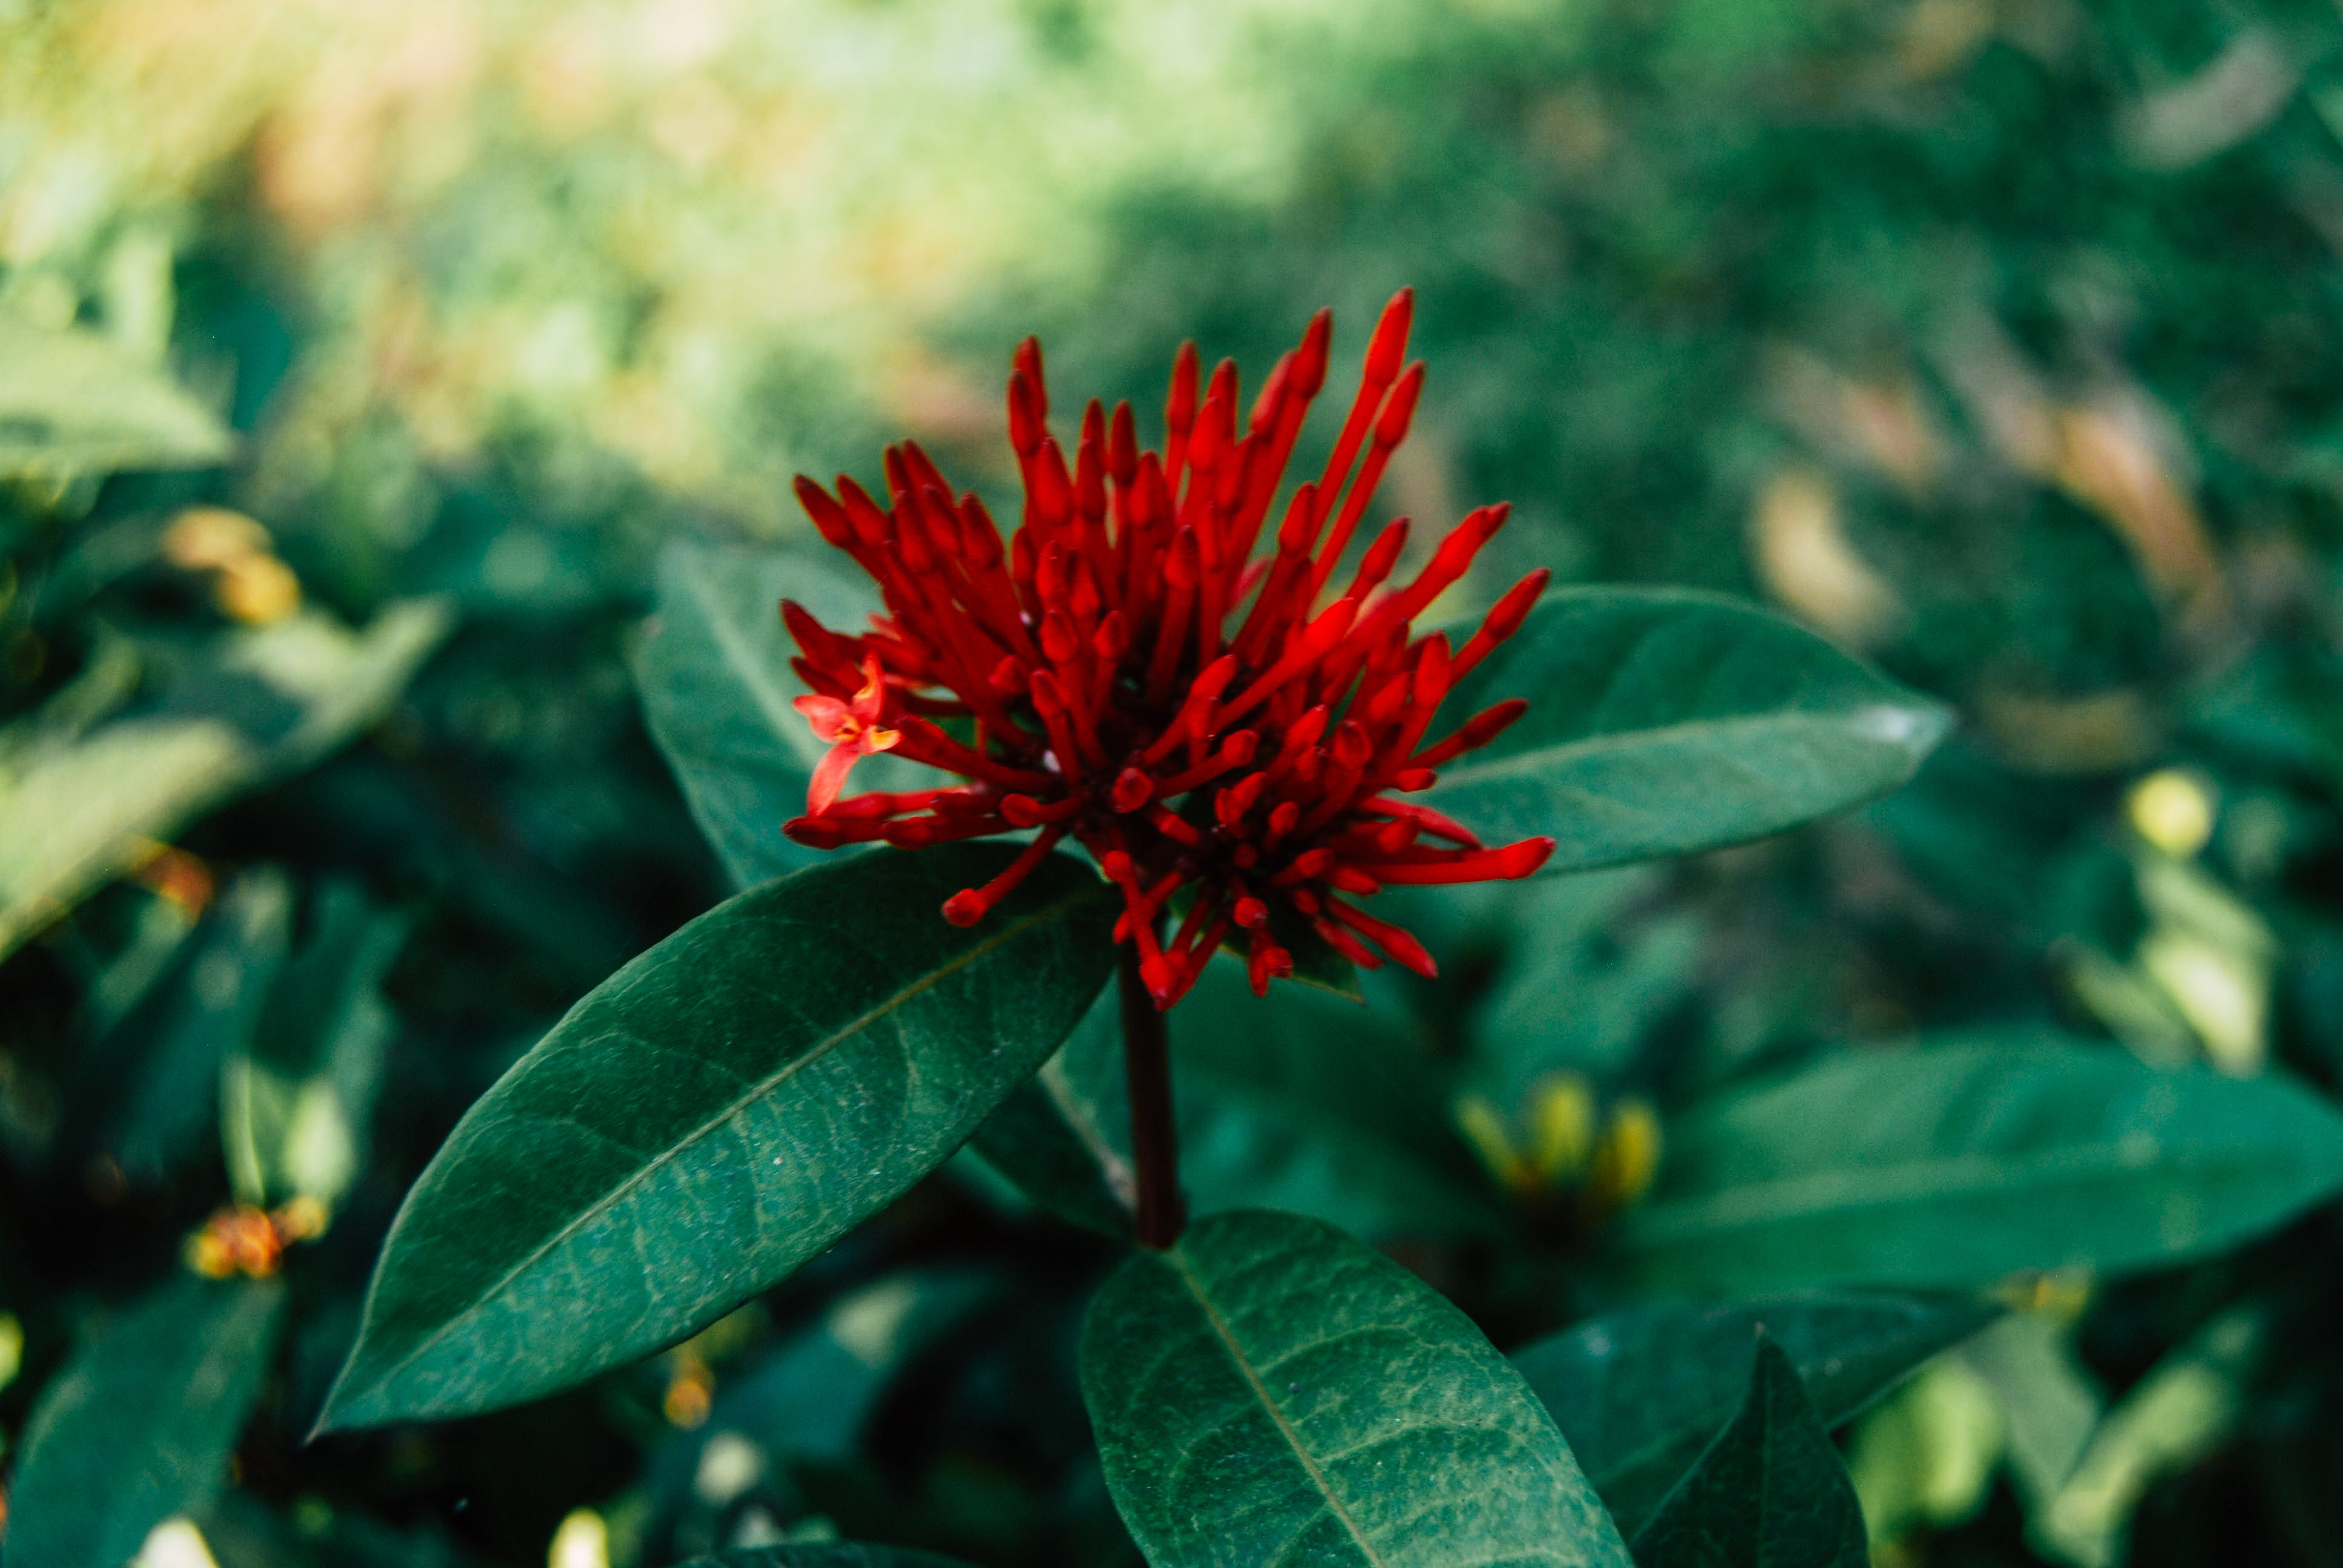 Selective Focus Photography of Red Ixora Flower Buds